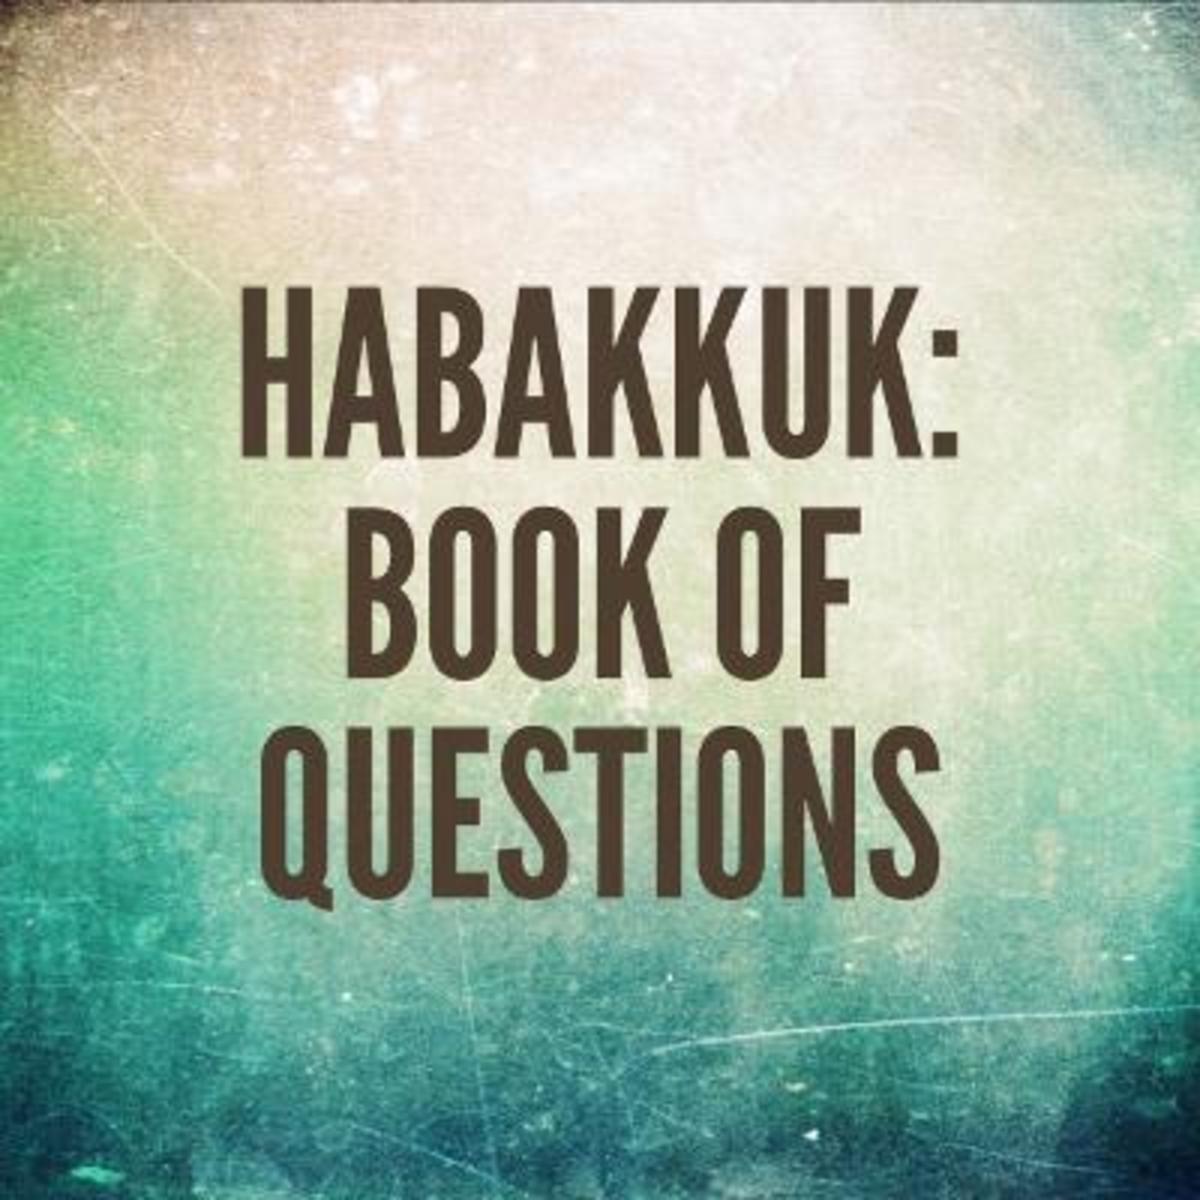 Habakkuk: Bible Book of Questions